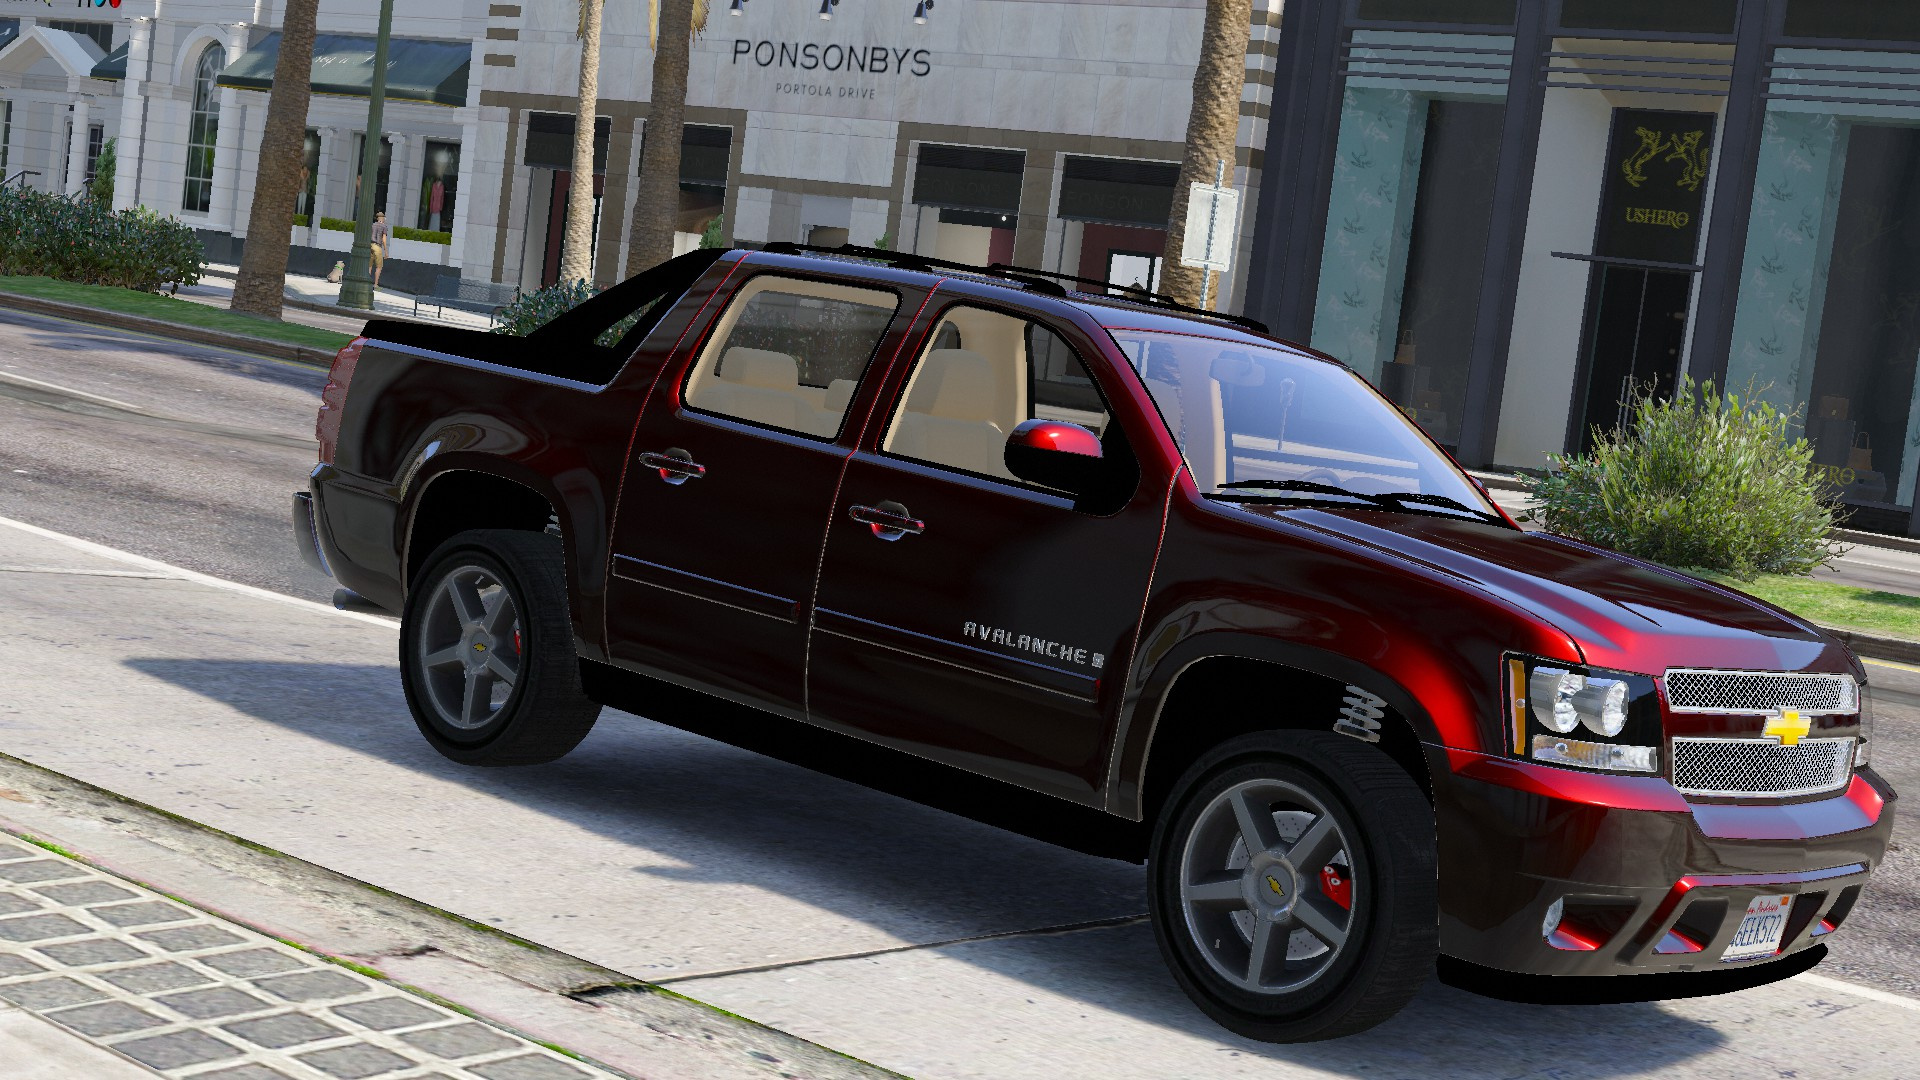 Chevy Impala Dual furthermore Chevrolet Avalanche Z Off Road Lt Edition Lift For Sale X besides Chevrolet Cruze Korean Market as well Grande besides Ca. on 2012 chevy avalanche